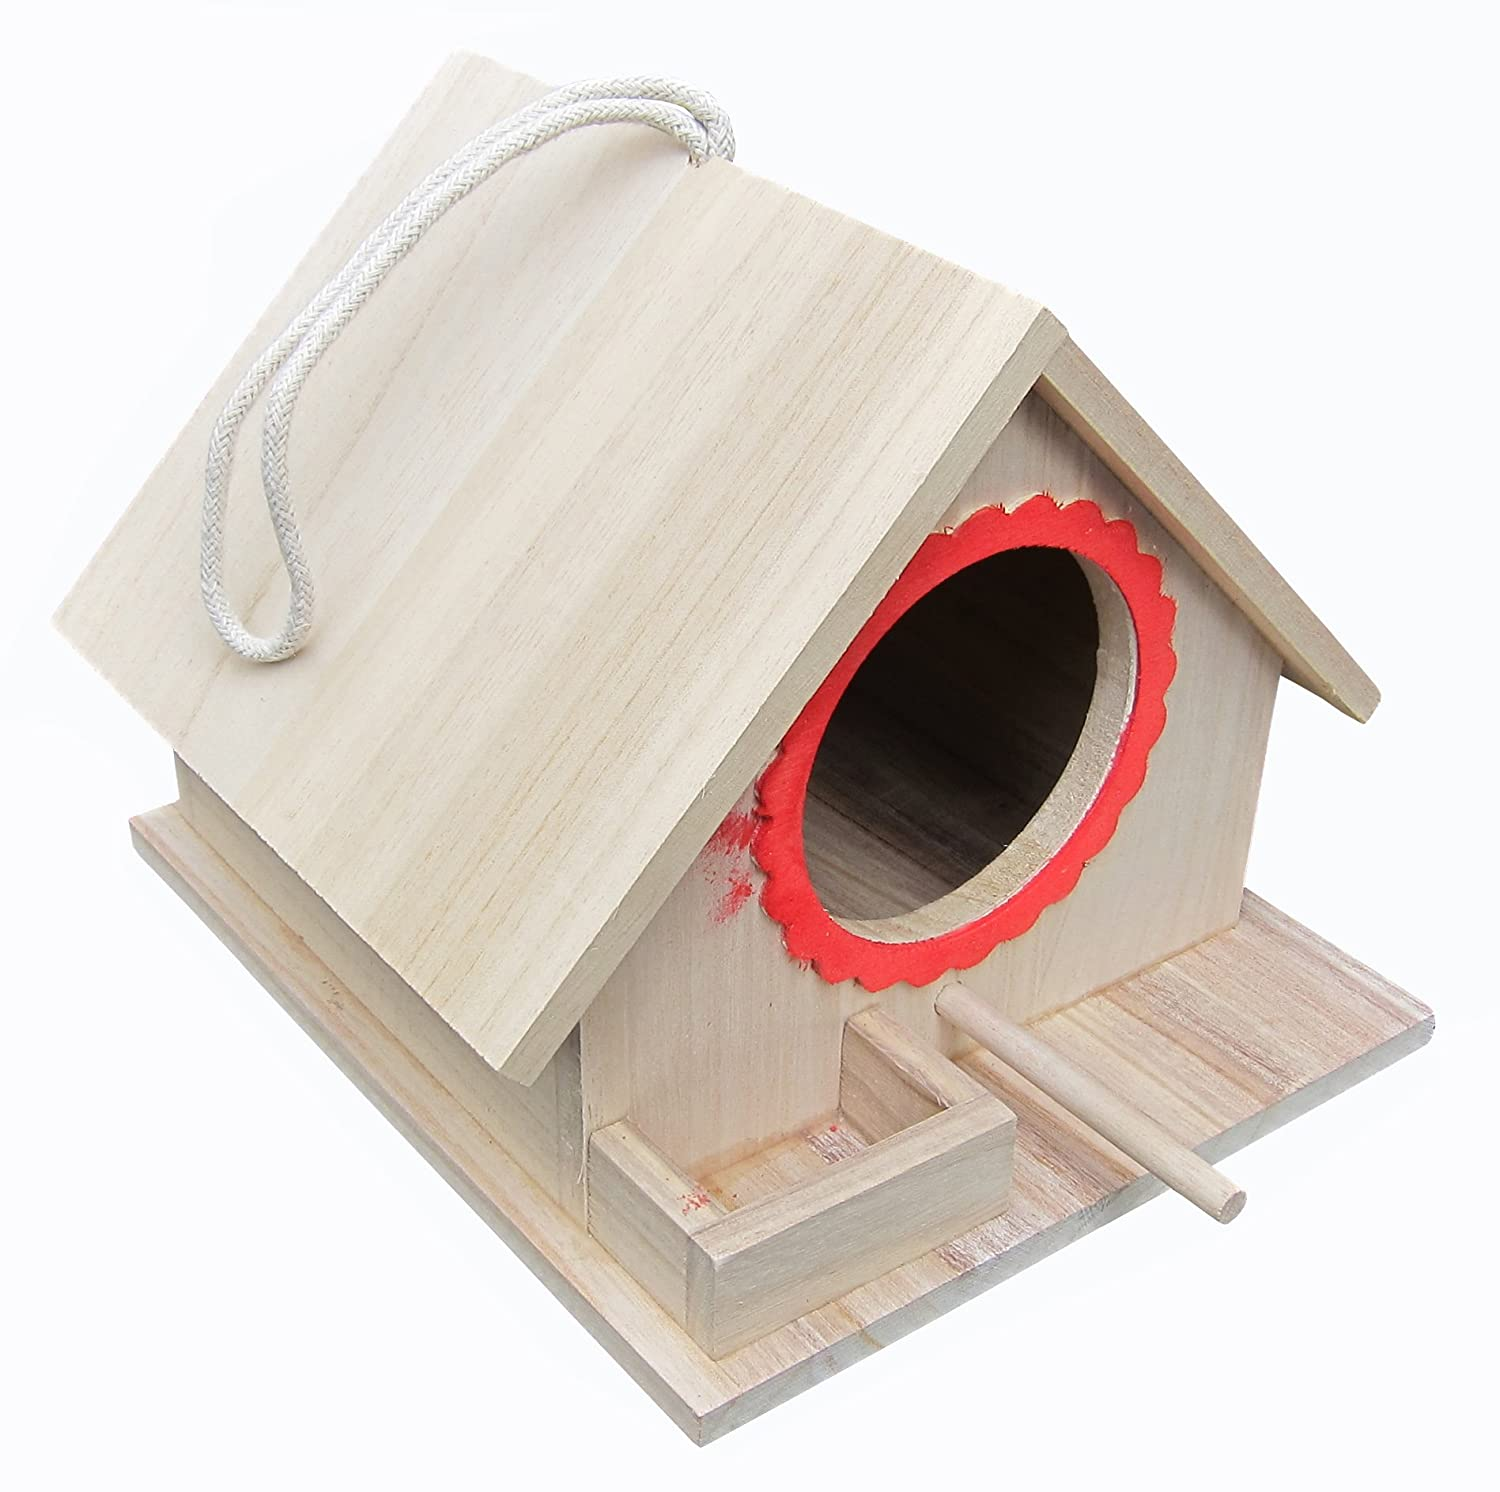 Bird Feeding House Bird Nesting Box Assembled(READY TO USE)for Big Birds Like Parrot Pigeon Dove as well as Small Birds Like Sparrow Tit Lark etc HANGZHOU FITTOOLS CO. LTD. 848097